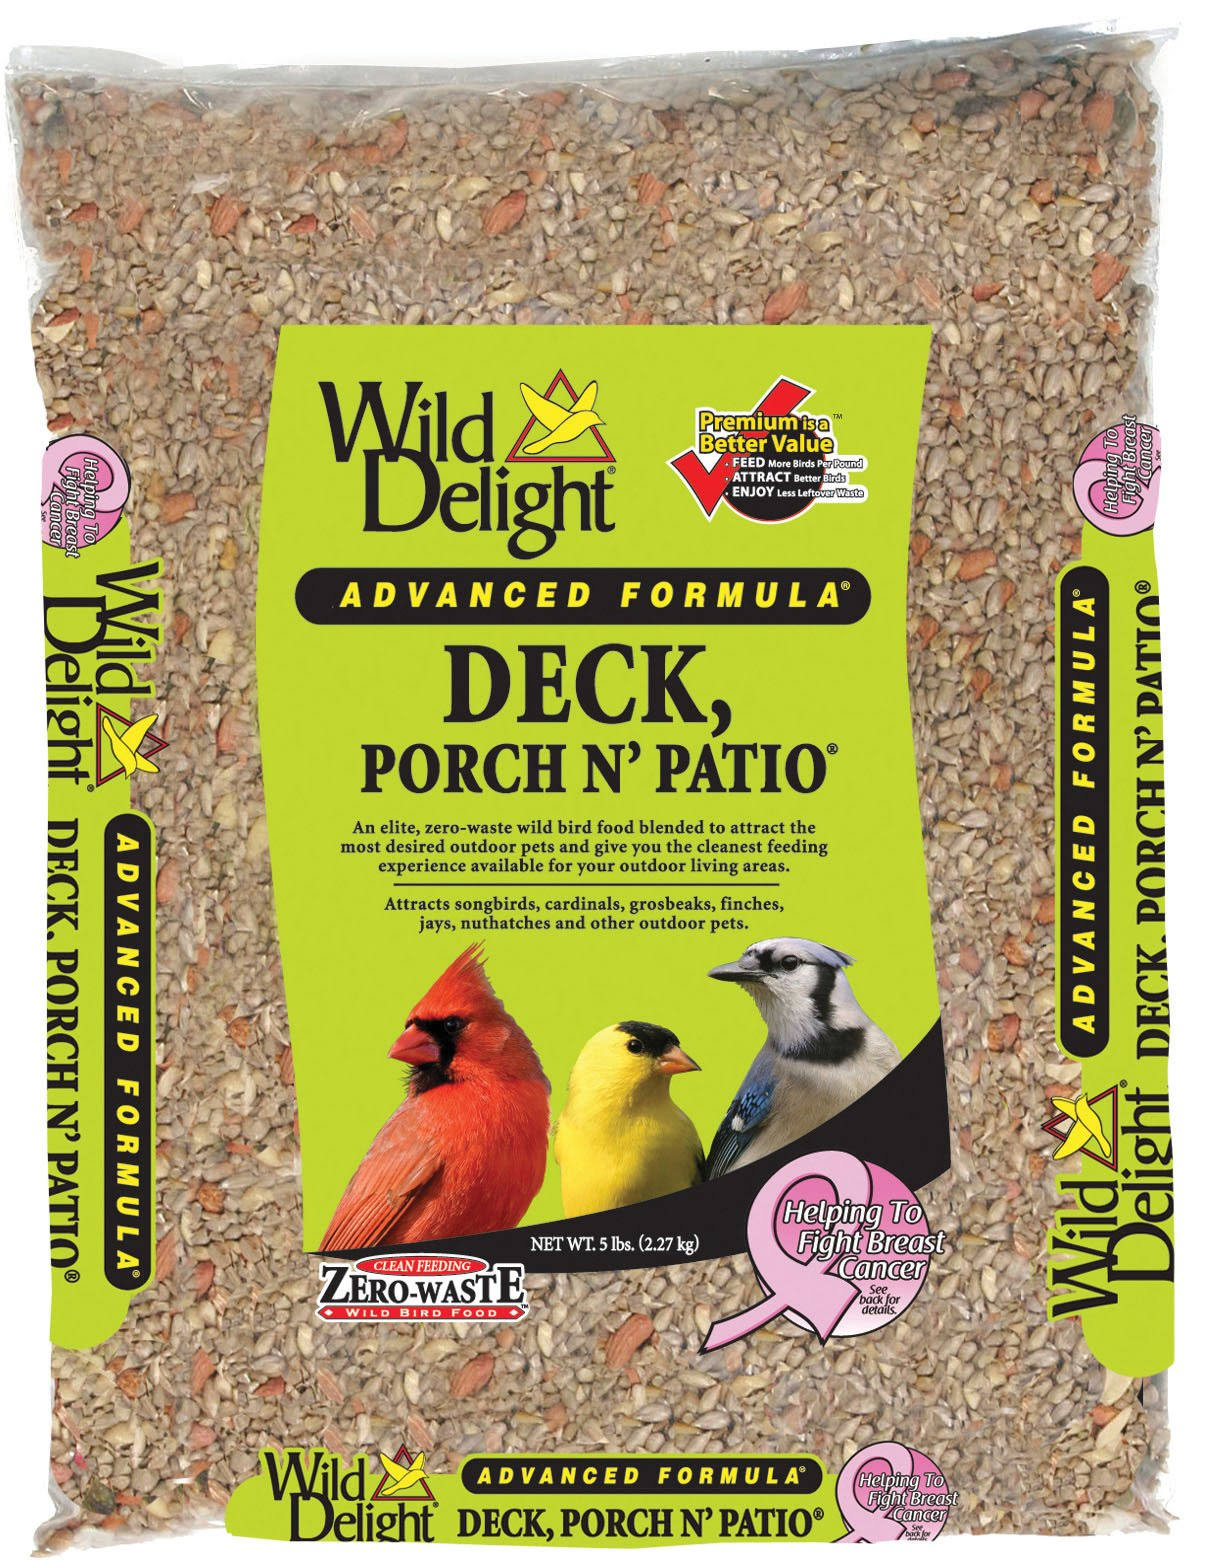 Wild Delight Advanced Formula Deck Porch N Patio Seed - 5lb